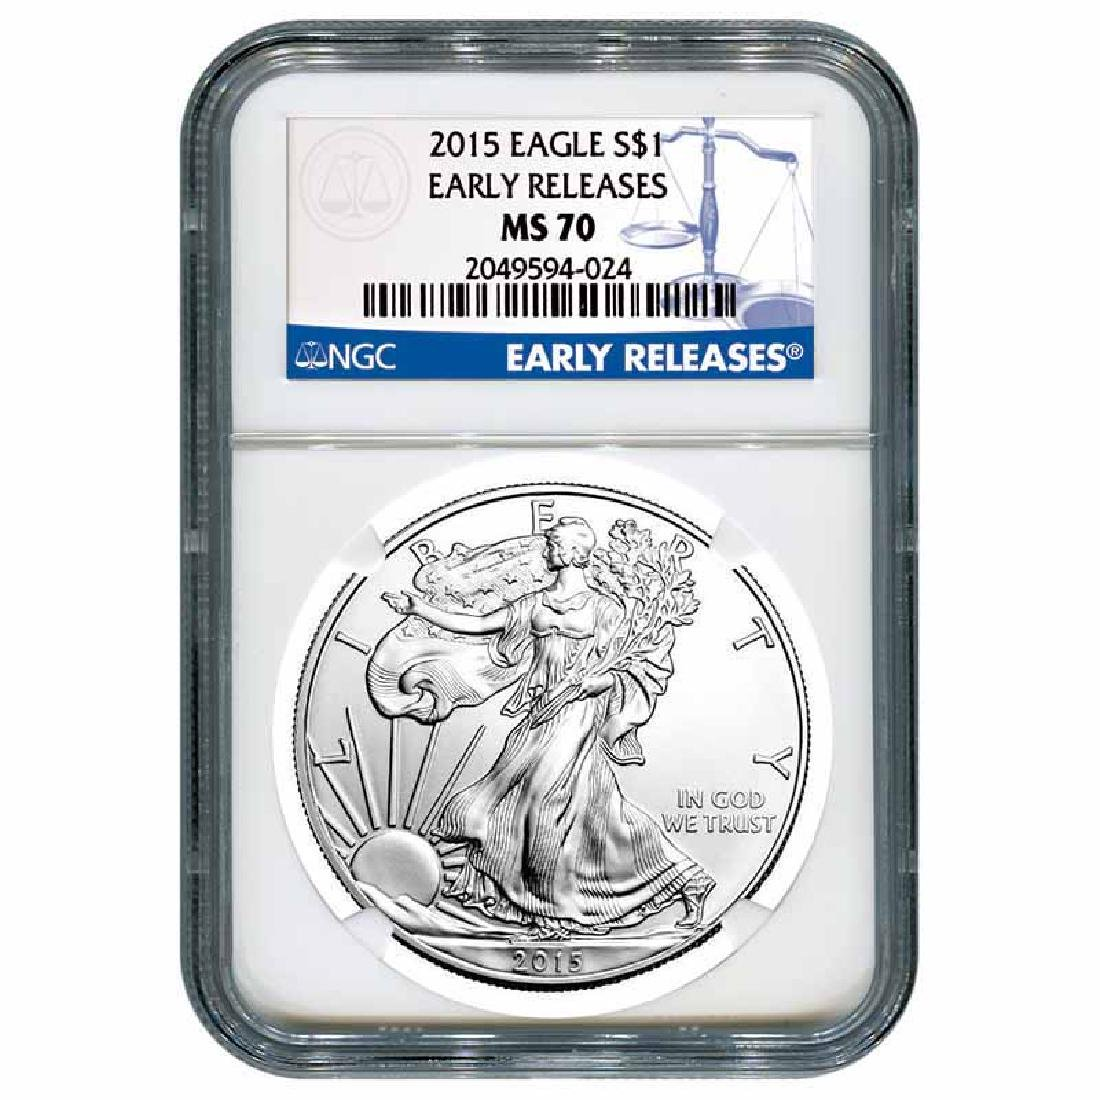 Certified Uncirculated Silver Eagle 2015 MS70 NGC Early